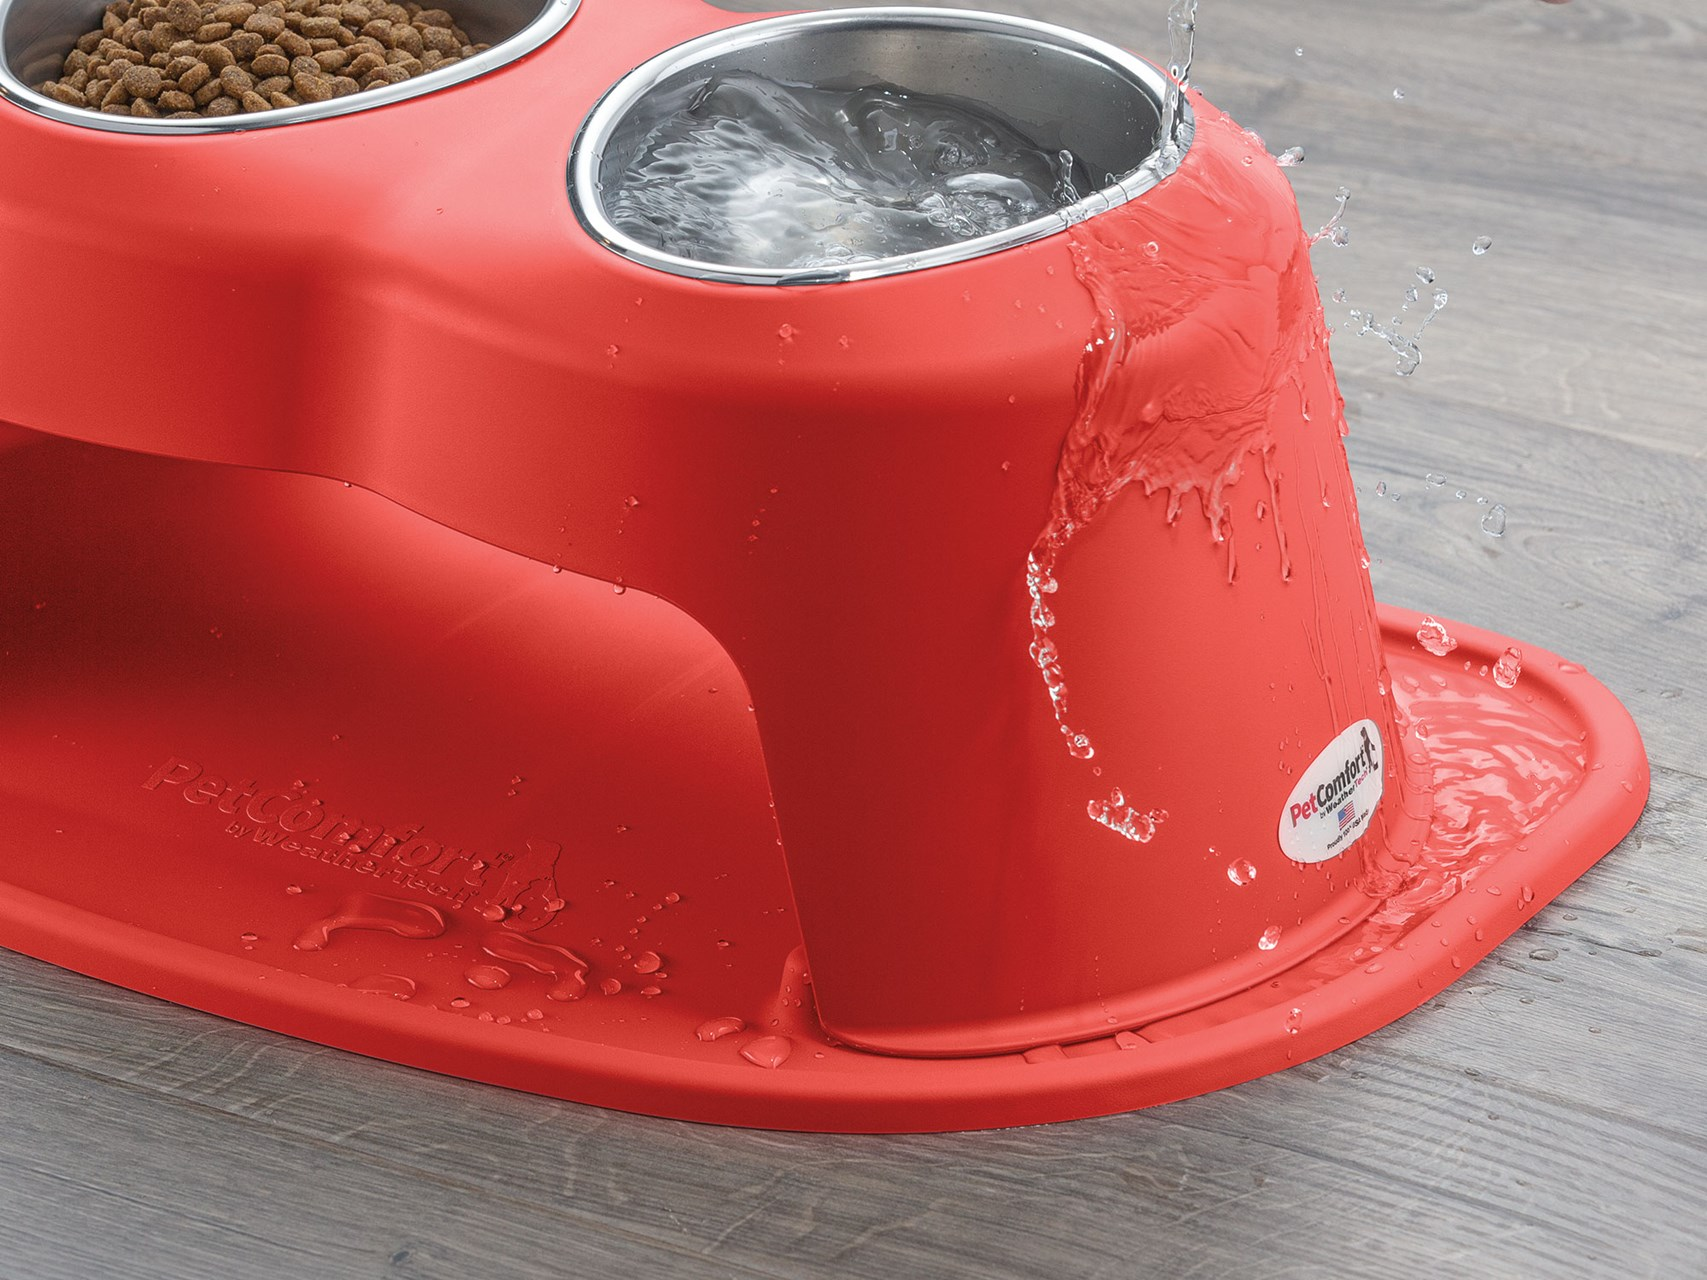 PetComfort_Web_Redesign_DoubleHigh_Sloping_Surface_Spillage_Red_doublehigh